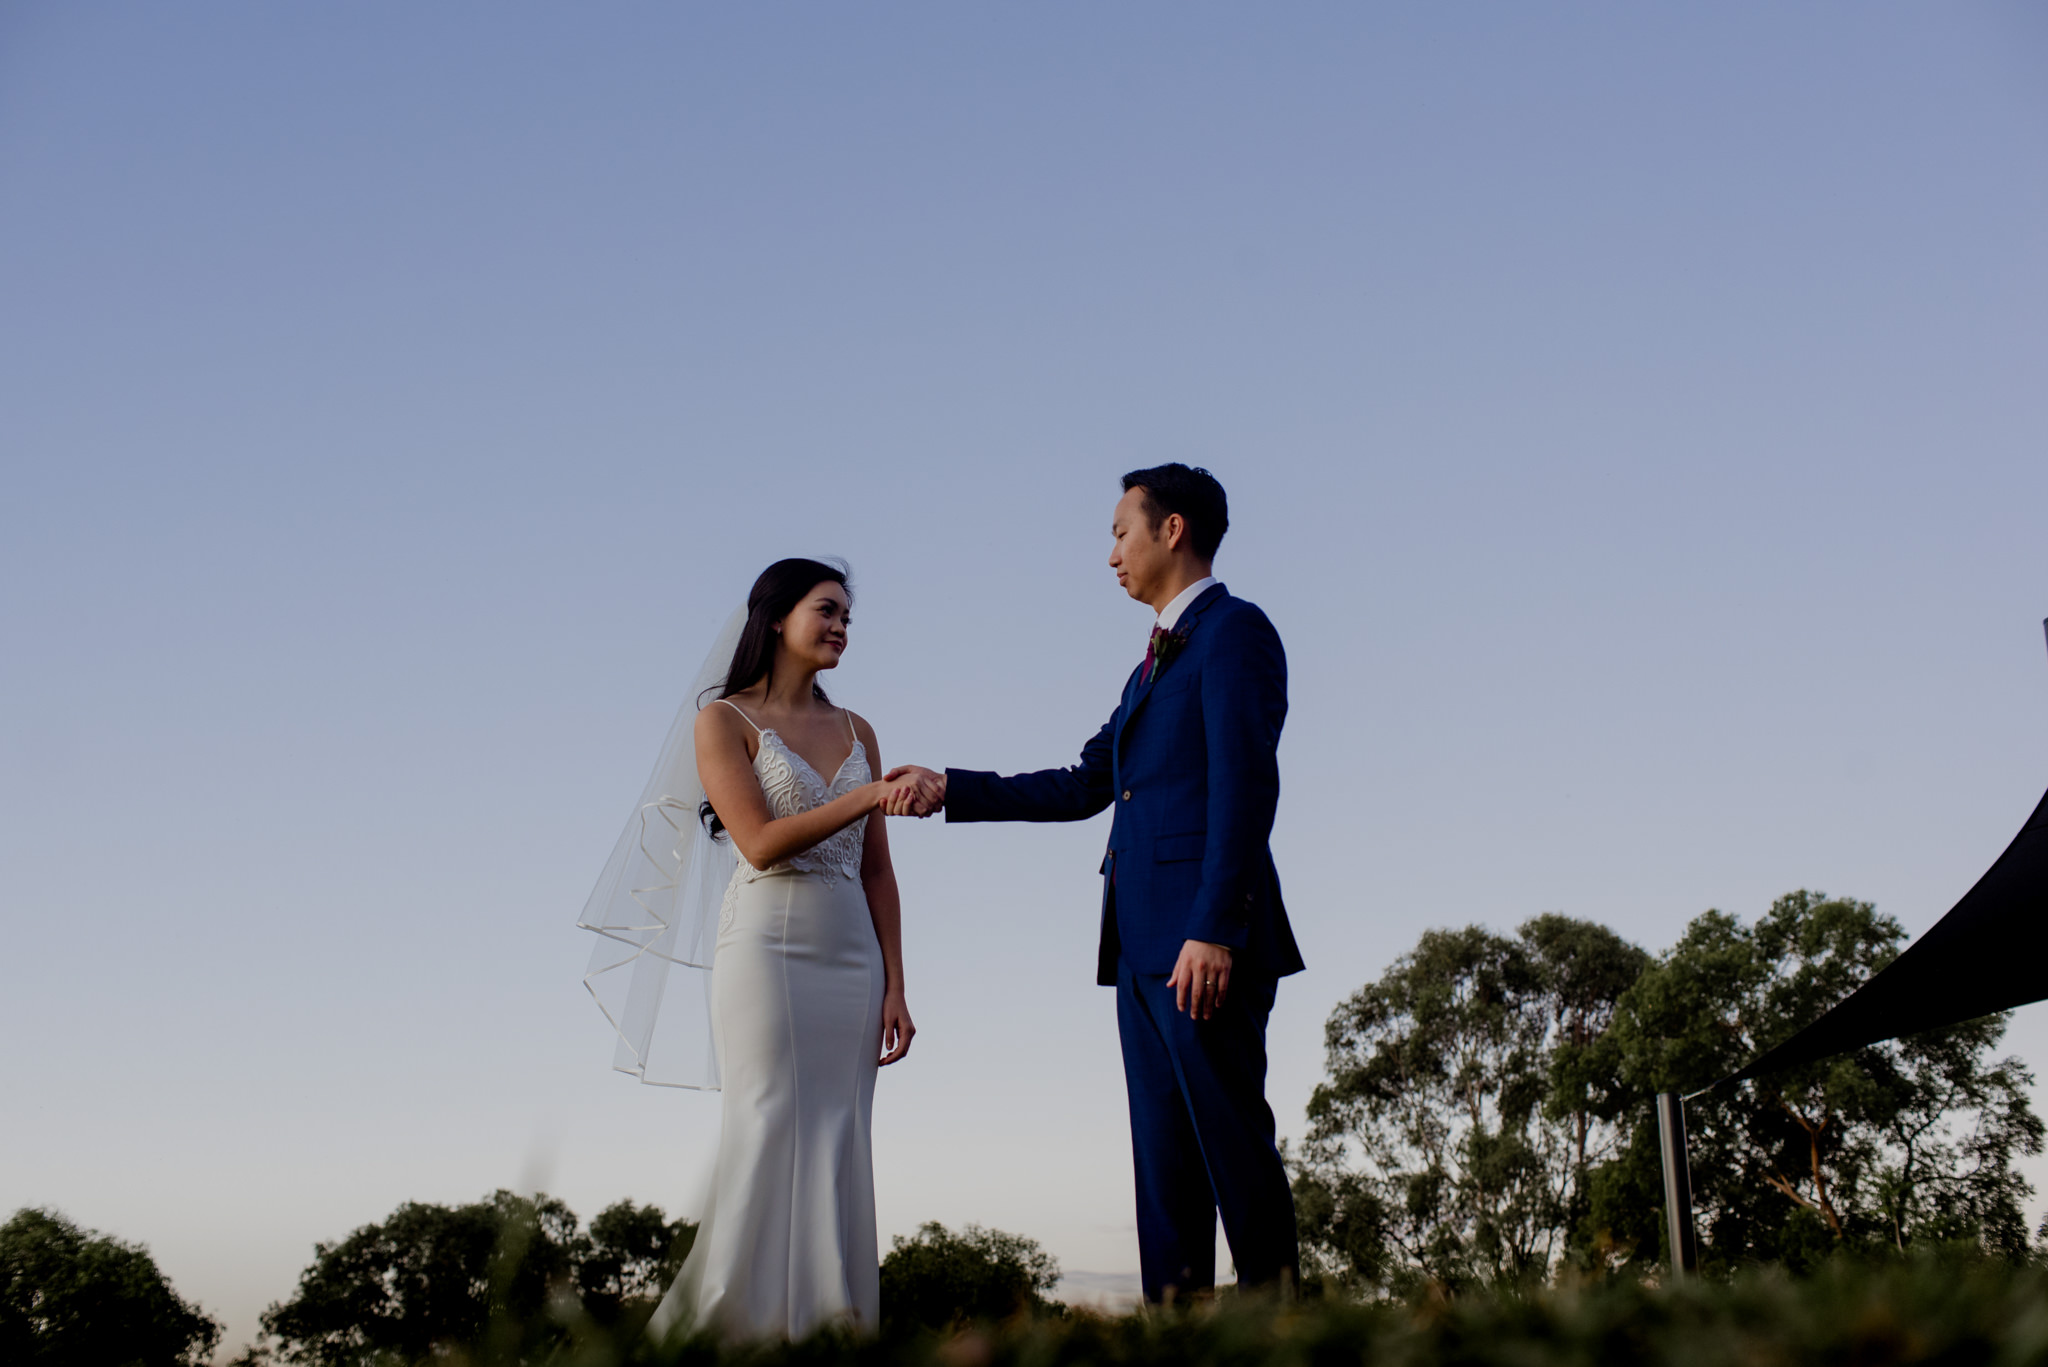 A bride and groom shake hands during twilight